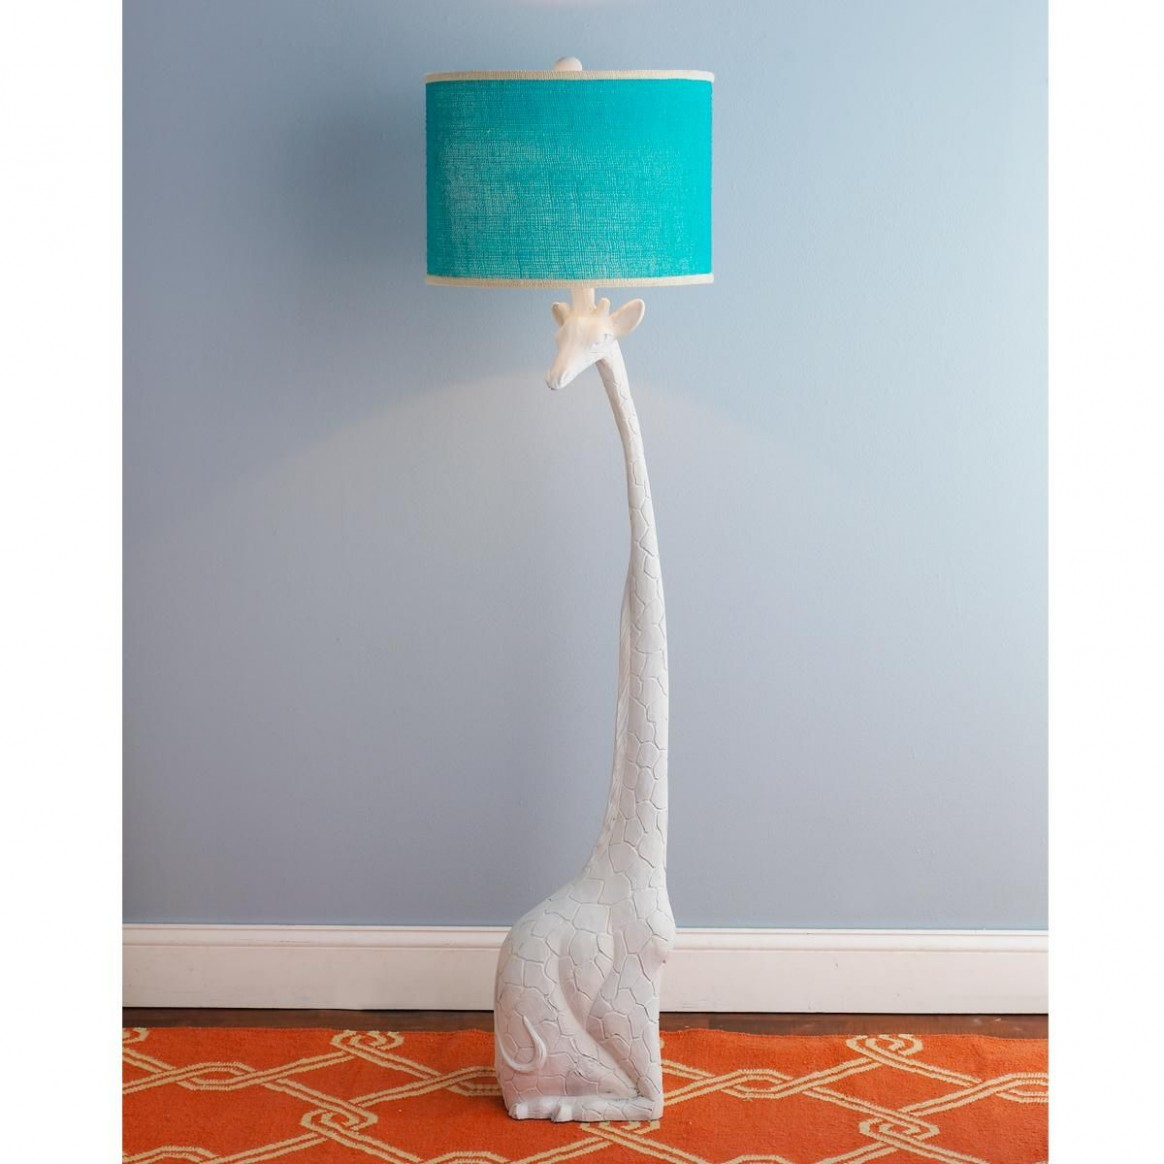 Giraffe Floor Lamp  Cool floor lamps, Kid room decor, Kids room  - Baby Room Floor Lamp